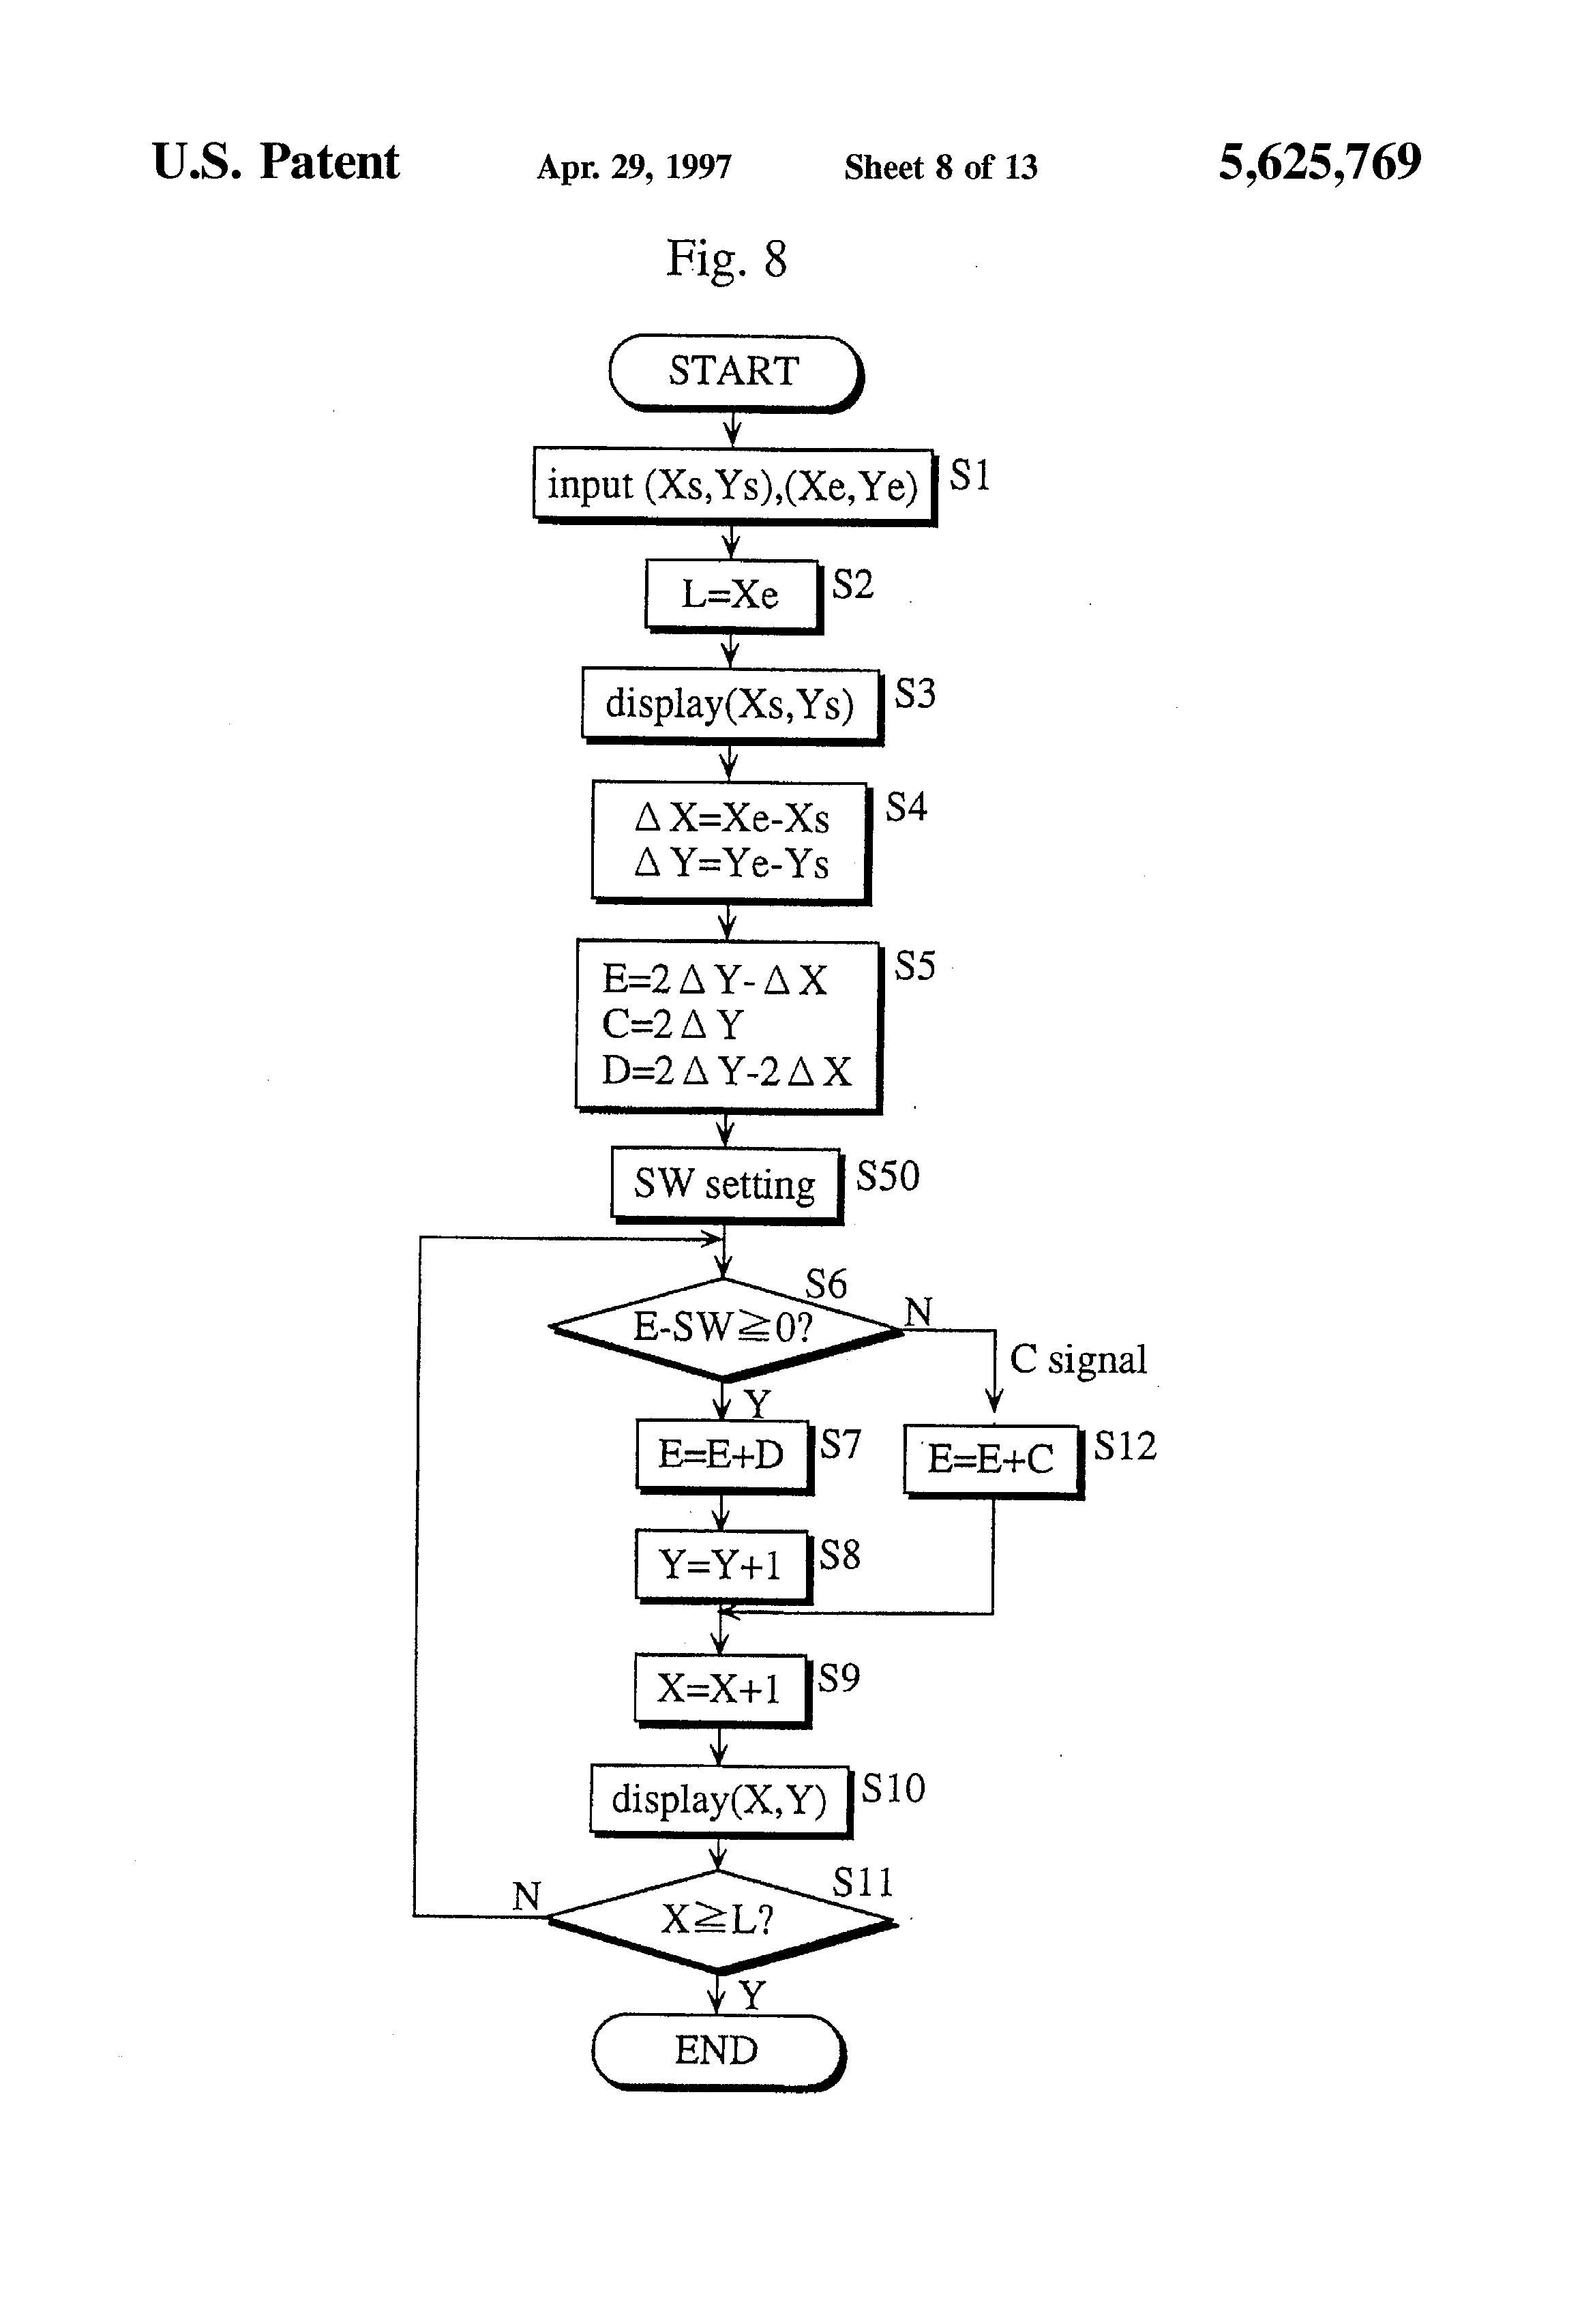 Line Drawing Method Ethics : Patent us apparatus for and method of generating